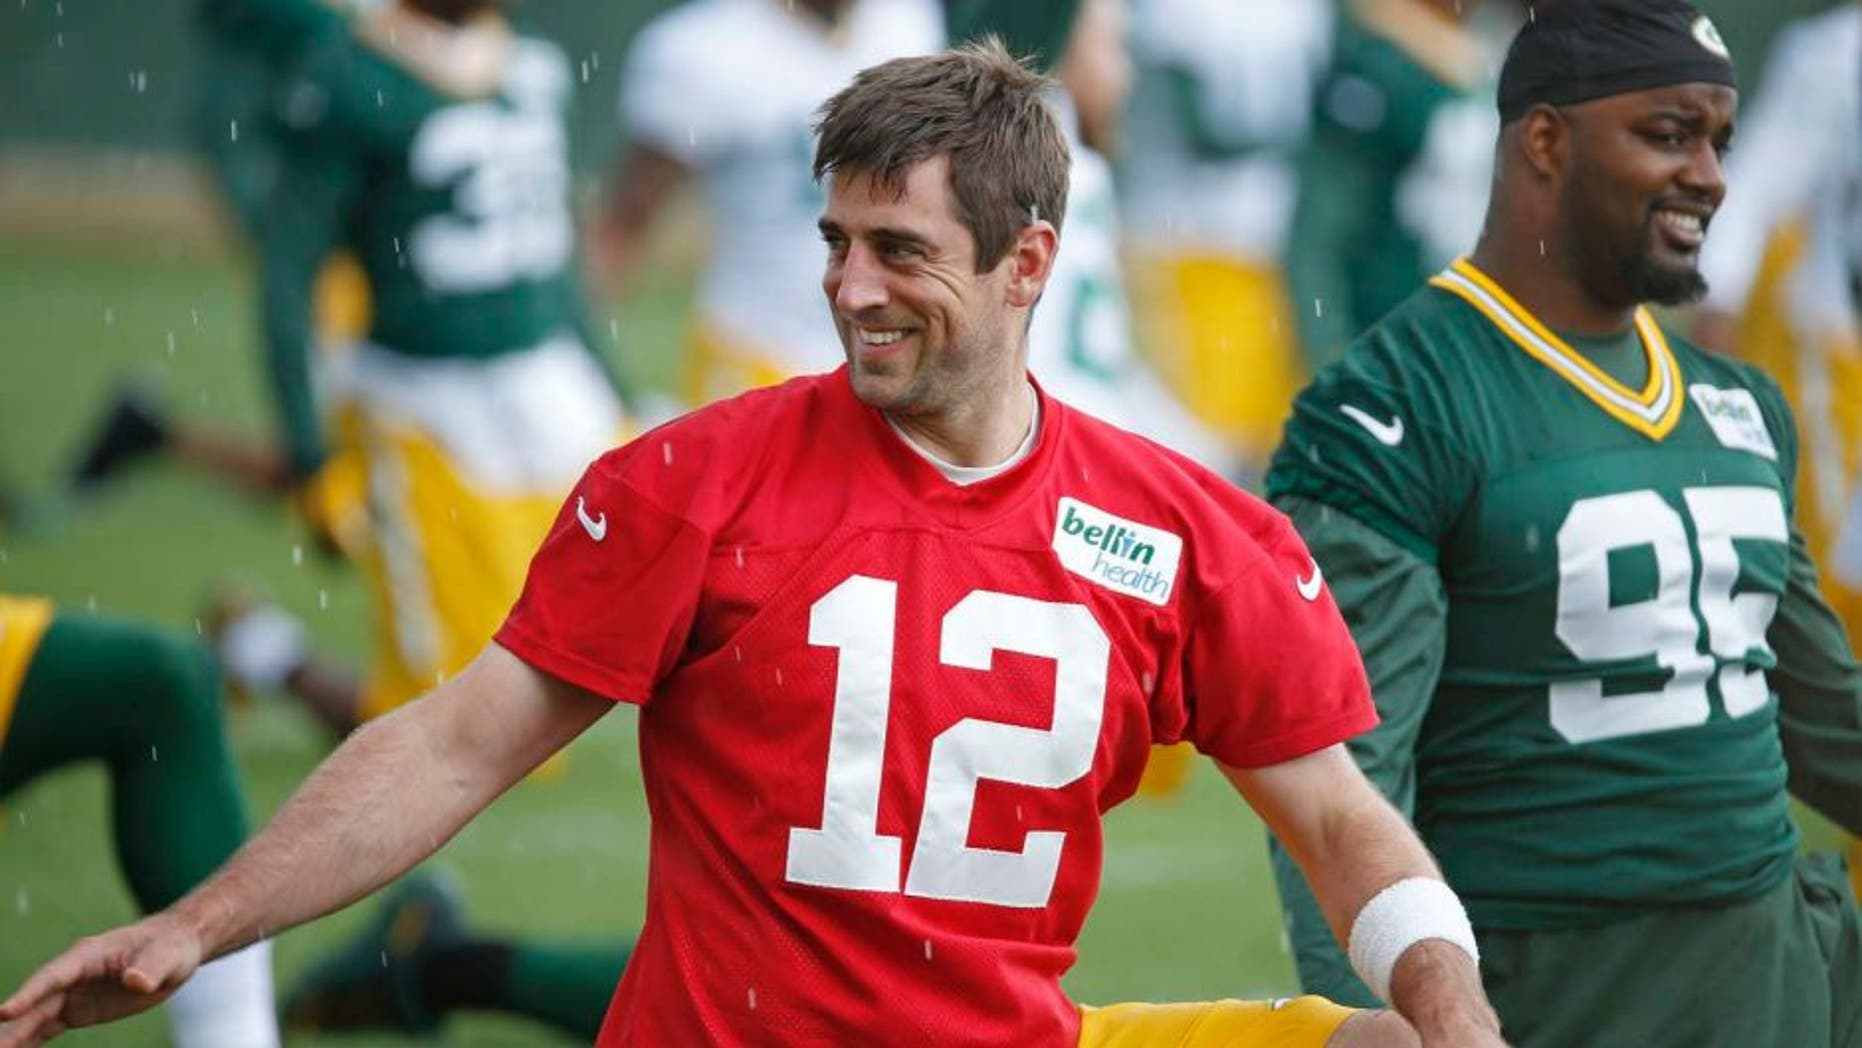 Green Bay Packers quarterback Aaron Rodgers stretches during a practice Monday June 6, 2016, in Green Bay, Wis.